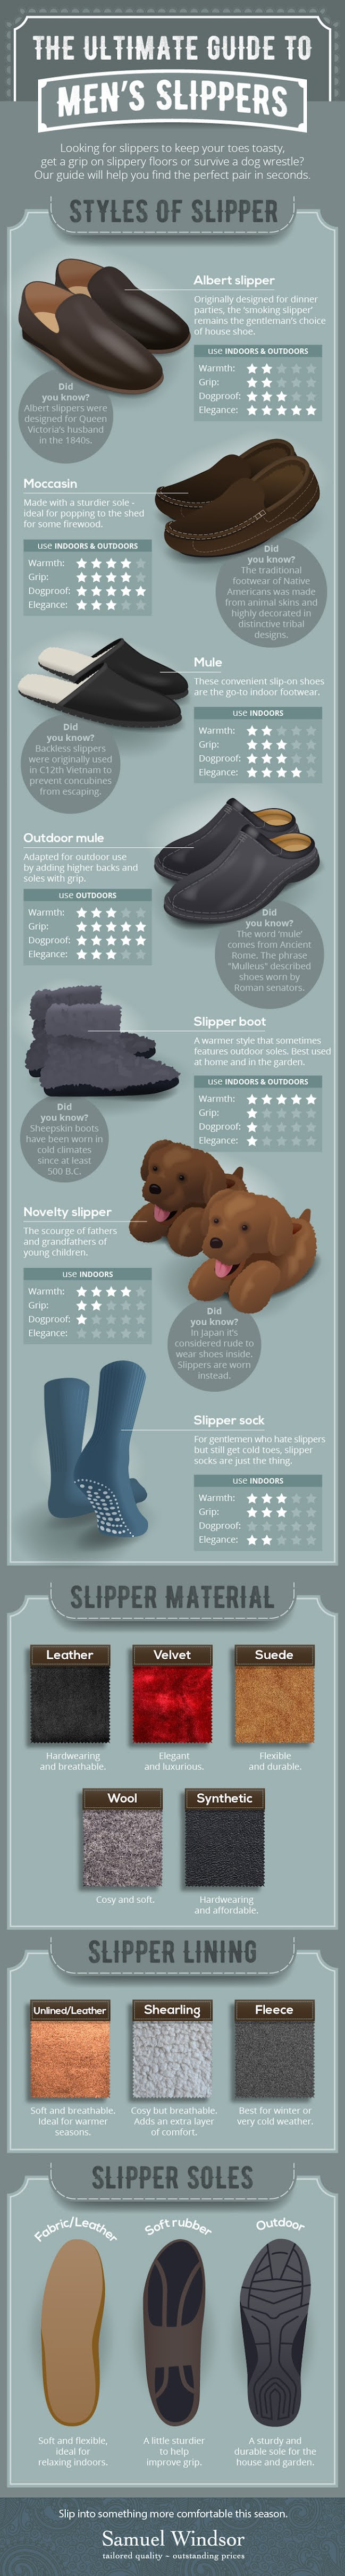 The Ultimate Guide To Men's Slippers #infographic #Men Fashion #Fashion #Men's Slippers #Slippers